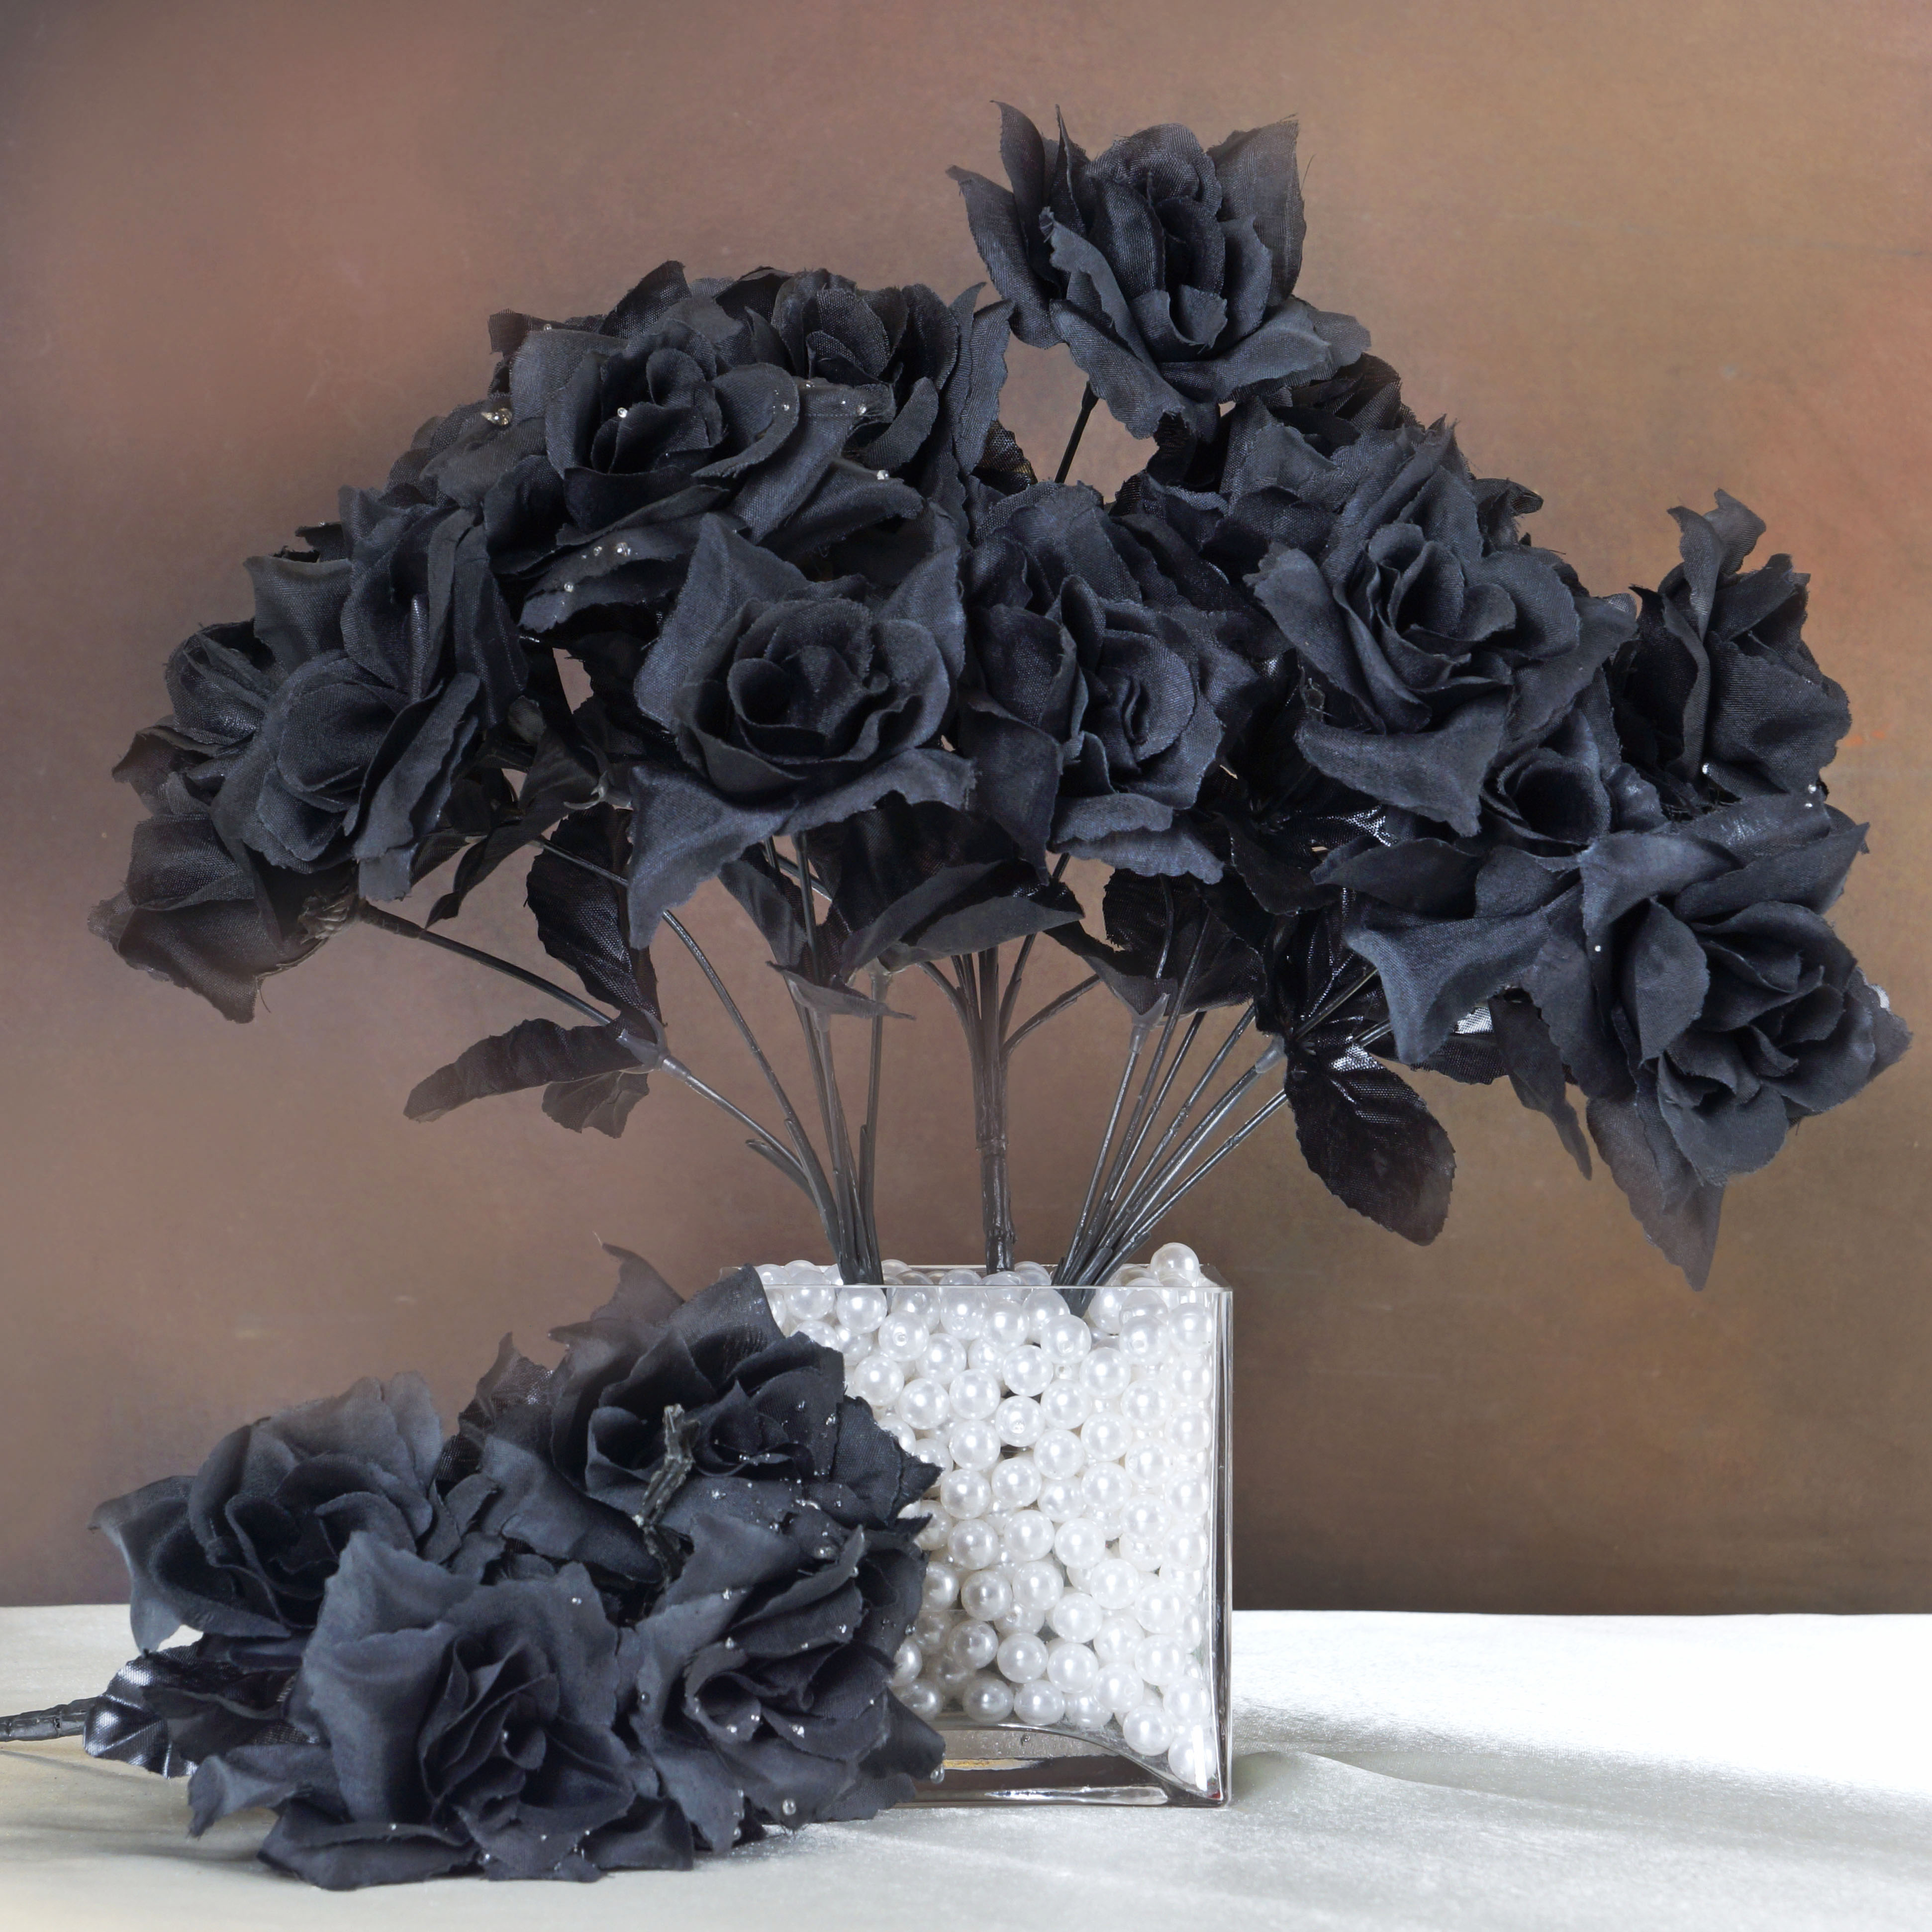 Efavormart 84 Artificial Open Roses for DIY Wedding Bouquets Centerpieces Arrangements Party Home Decorations Wholesale Supplies